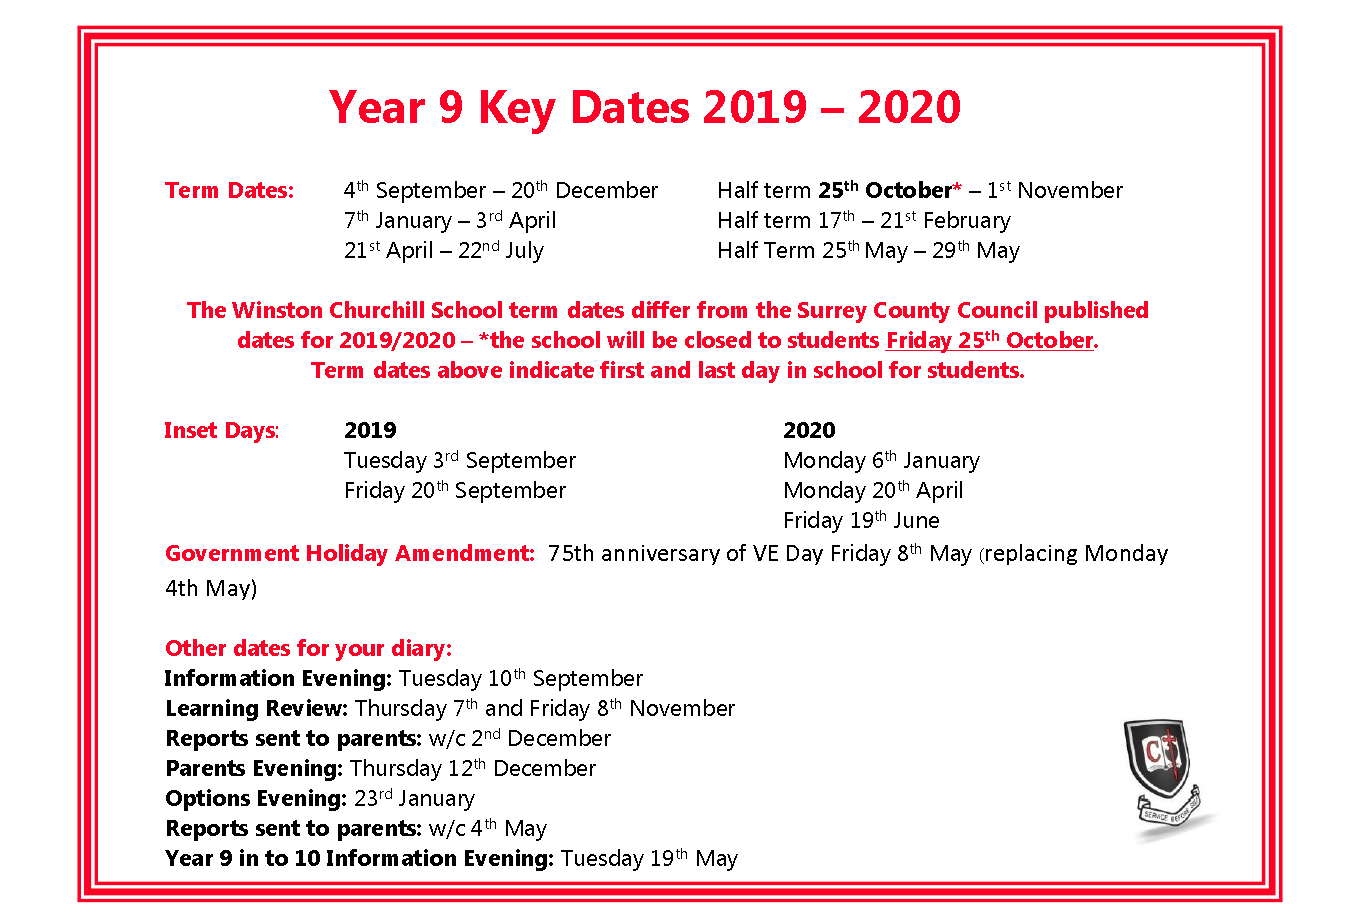 Year 9 Key Dates